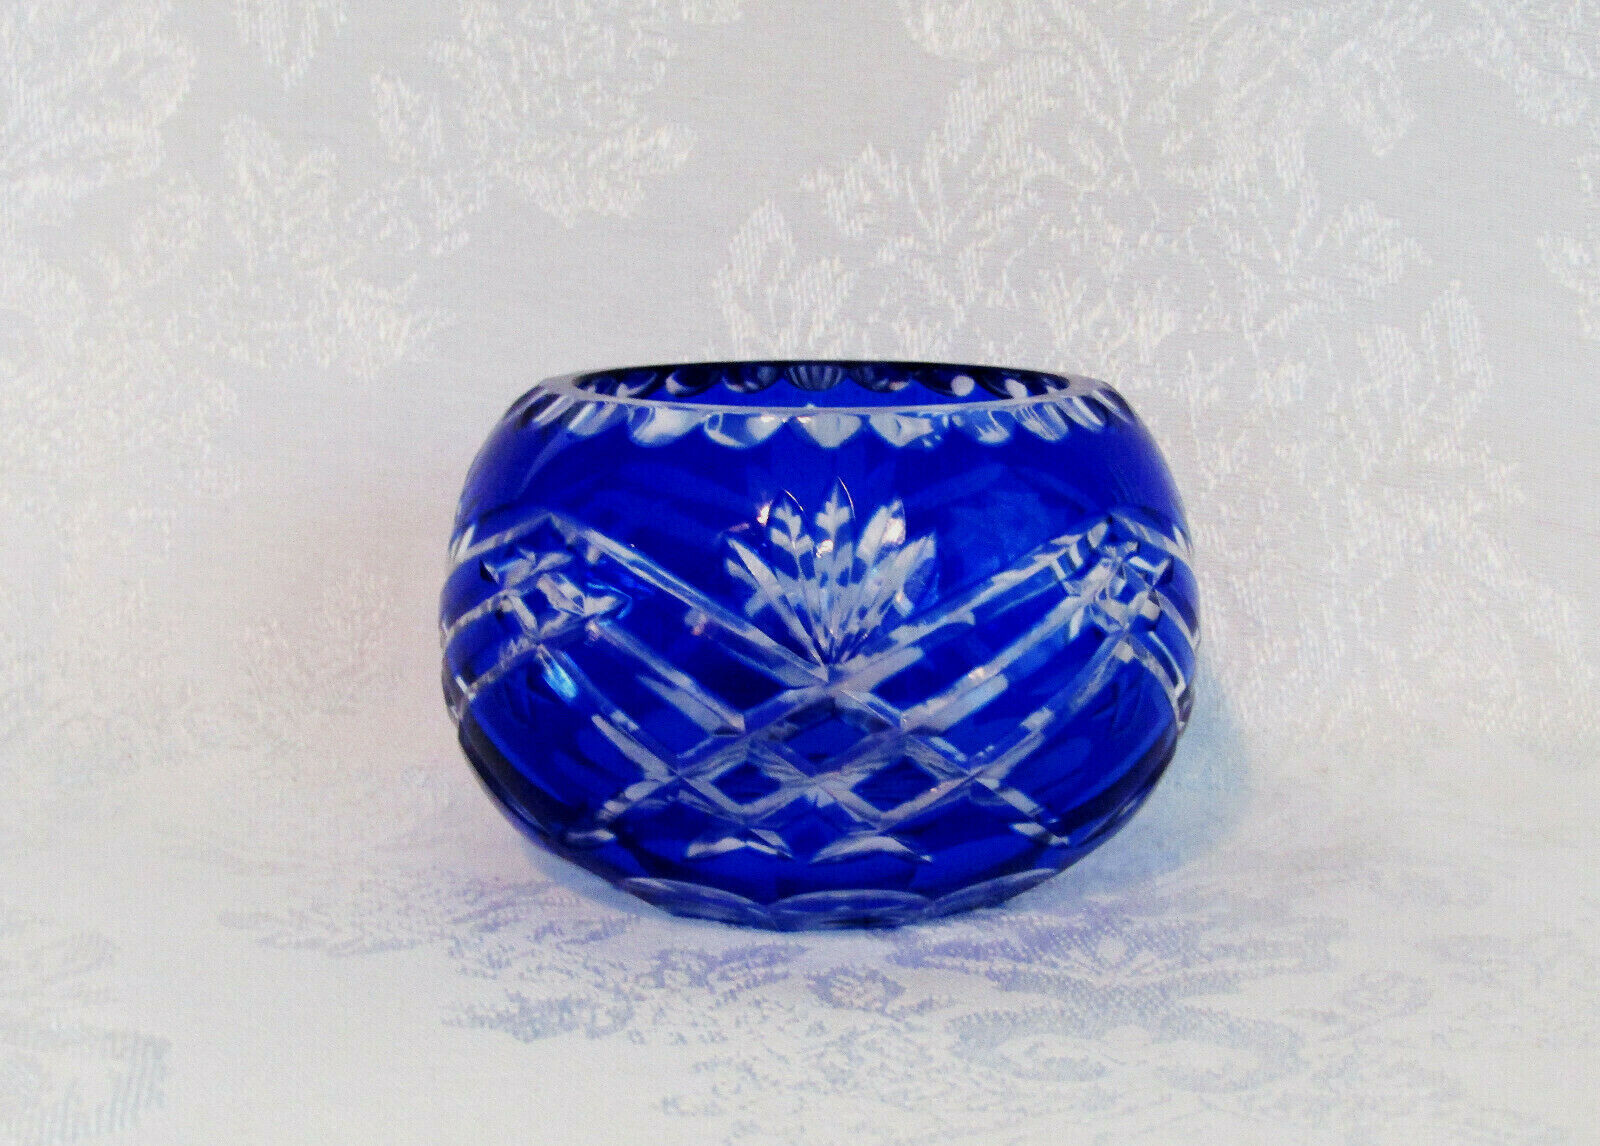 Vintage Cobalt Blue Cut To Clear Small Crystal Bowl - $38.00